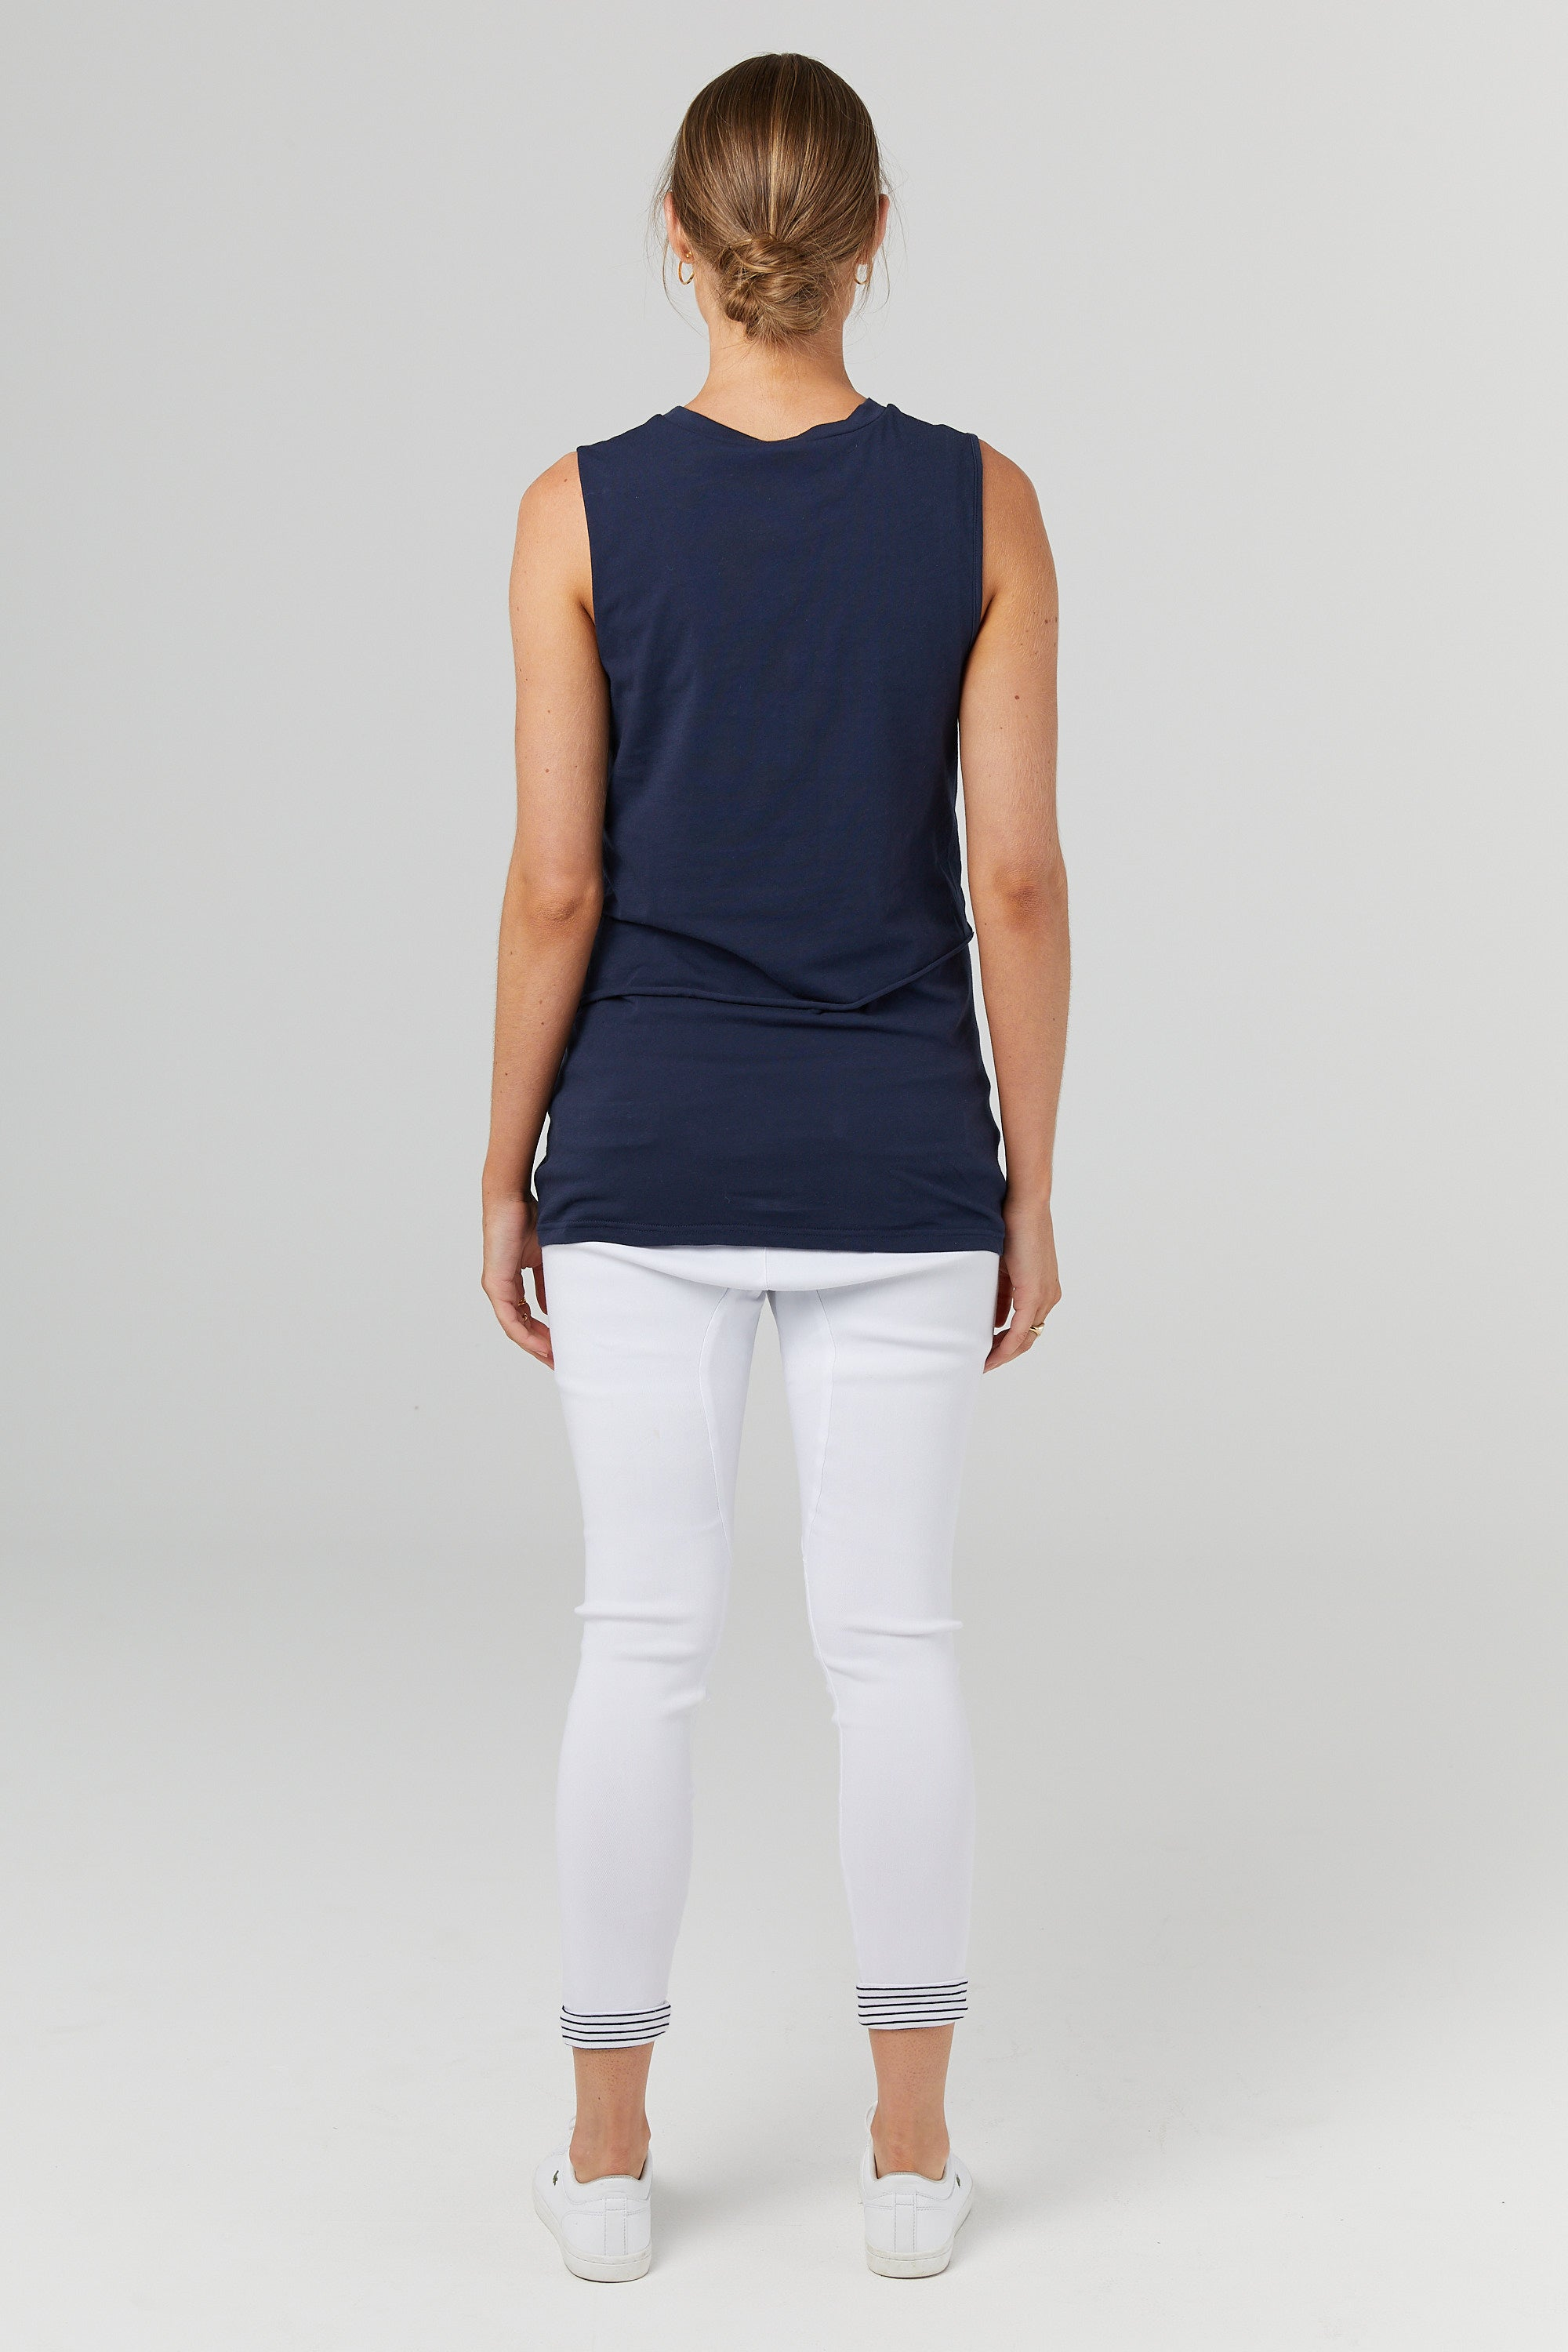 The Nursing Tank (Navy)